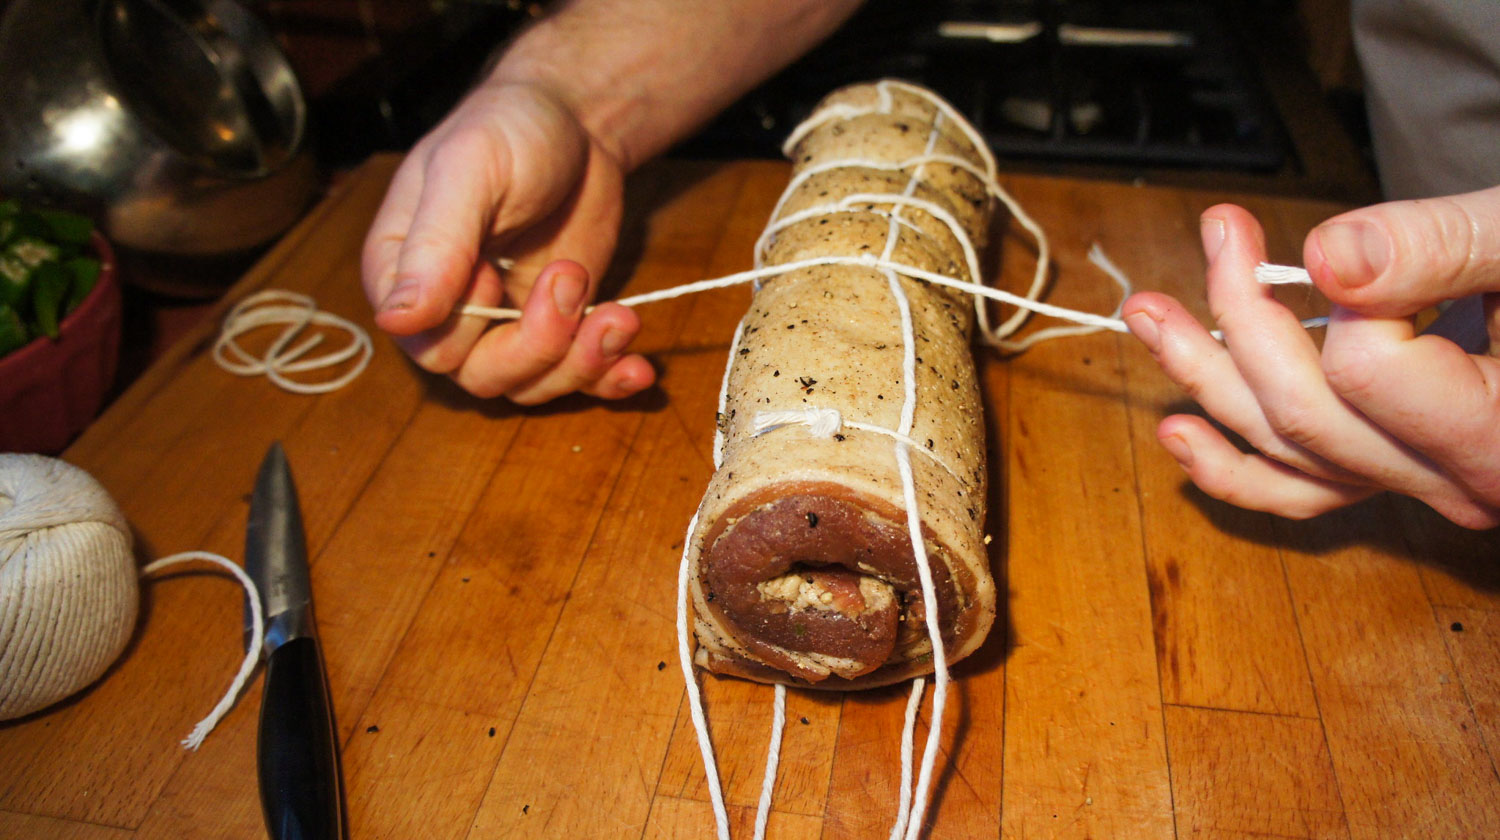 Tying a butcher knot on a roll of pancetta